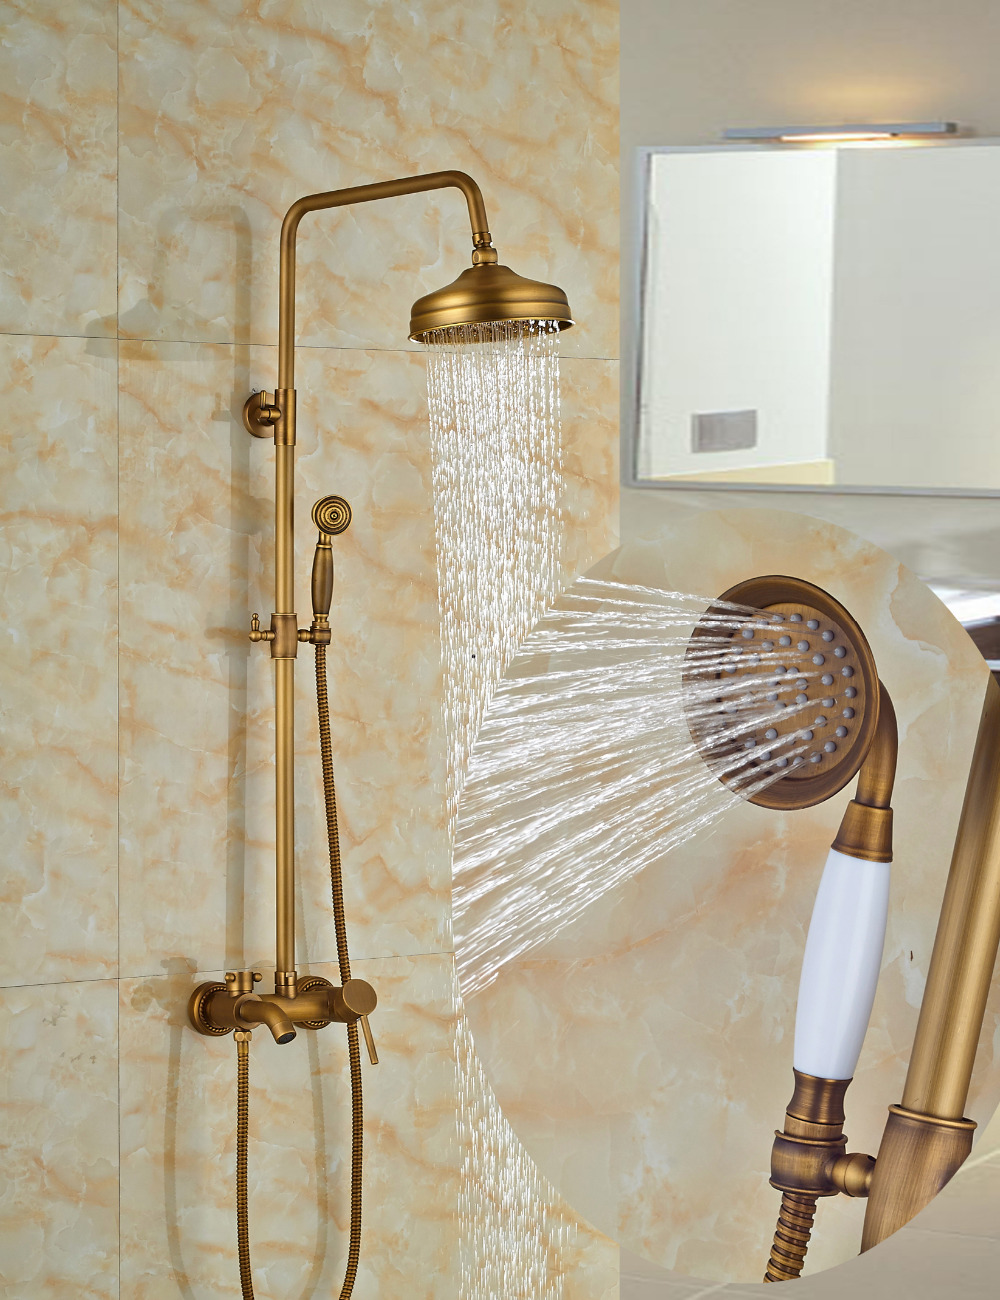 Nellie Antique Br Shower Set With 8 Inch Rain Head Handheld